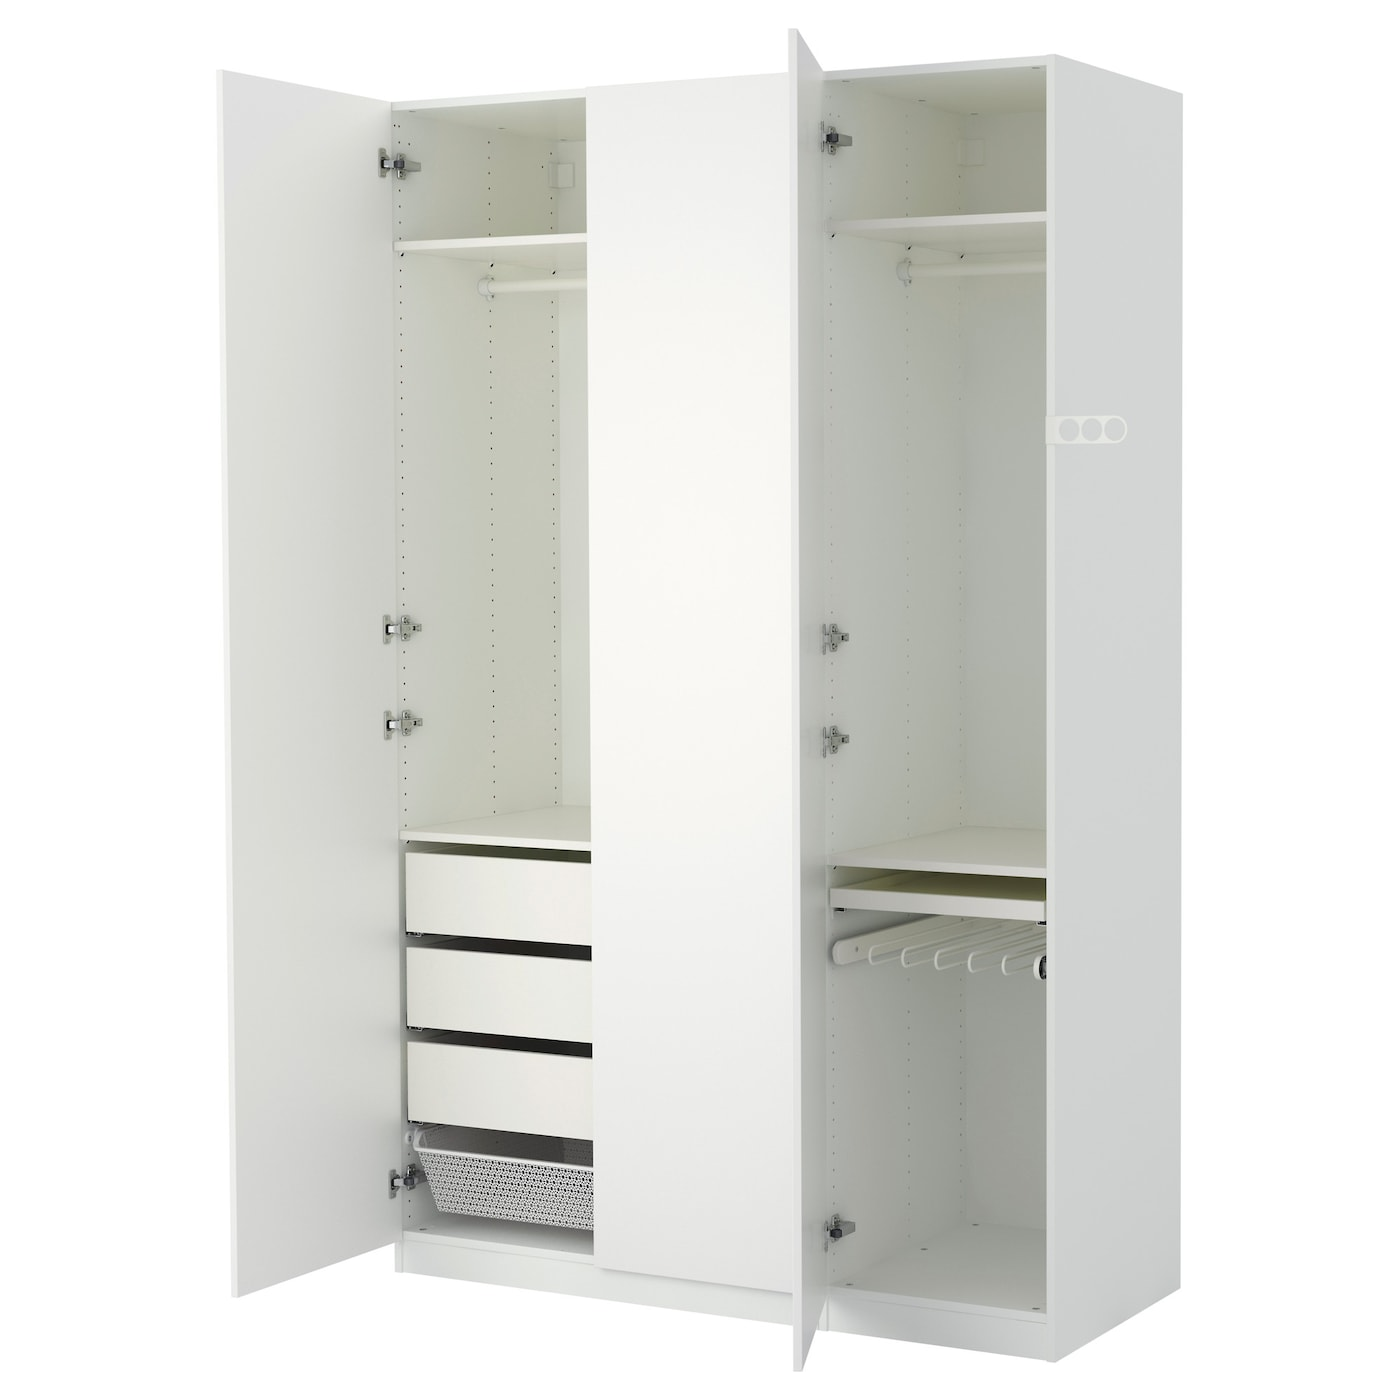 pax wardrobe white tanem white 150x60x236 cm ikea. Black Bedroom Furniture Sets. Home Design Ideas